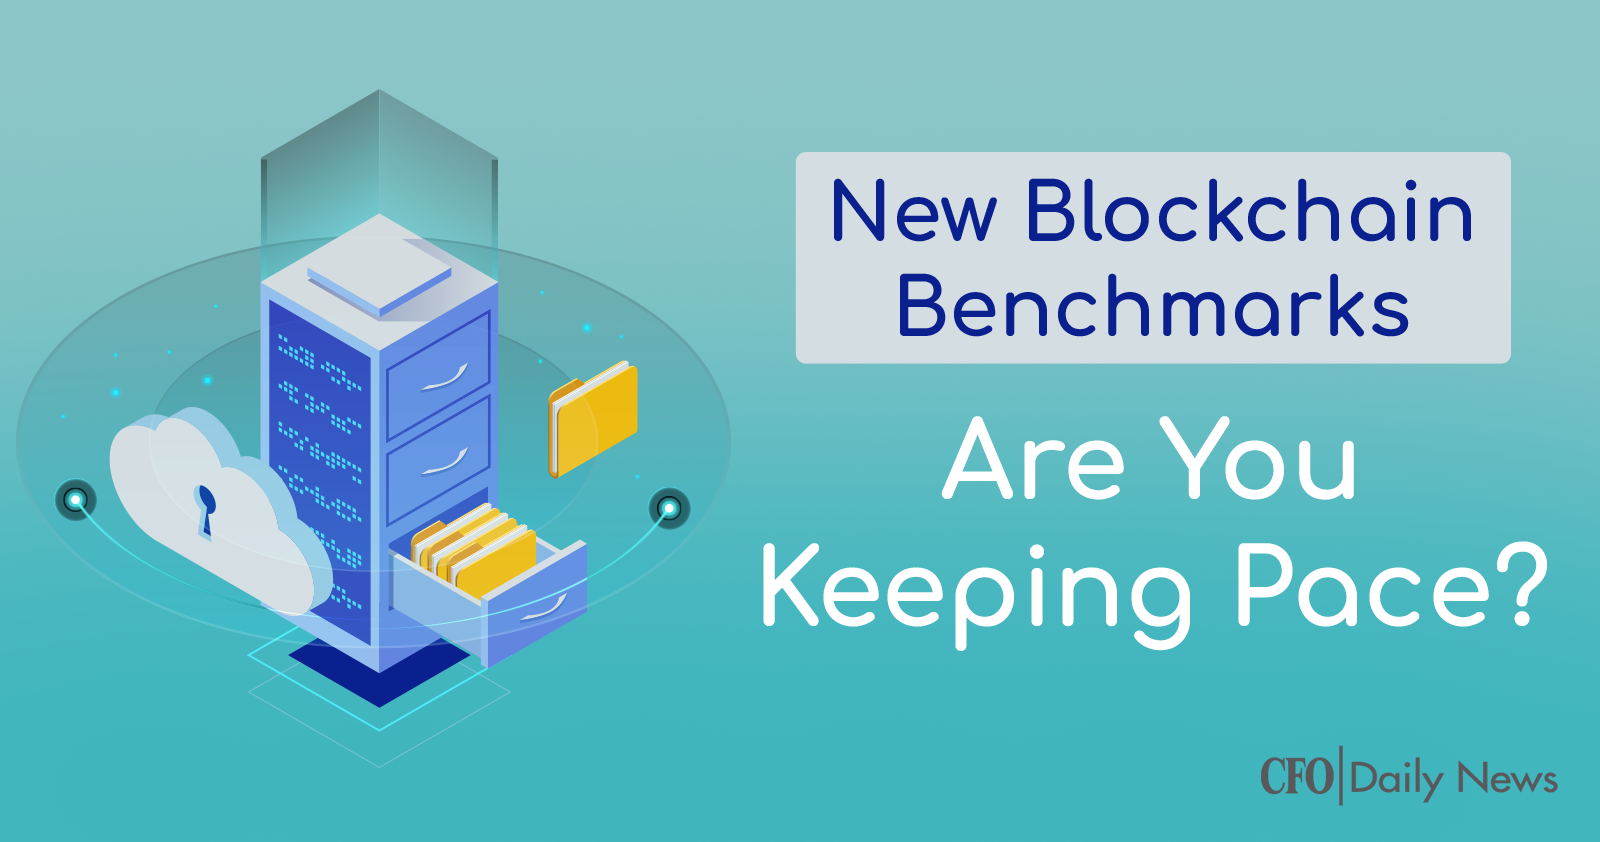 New blockchain benchmarks